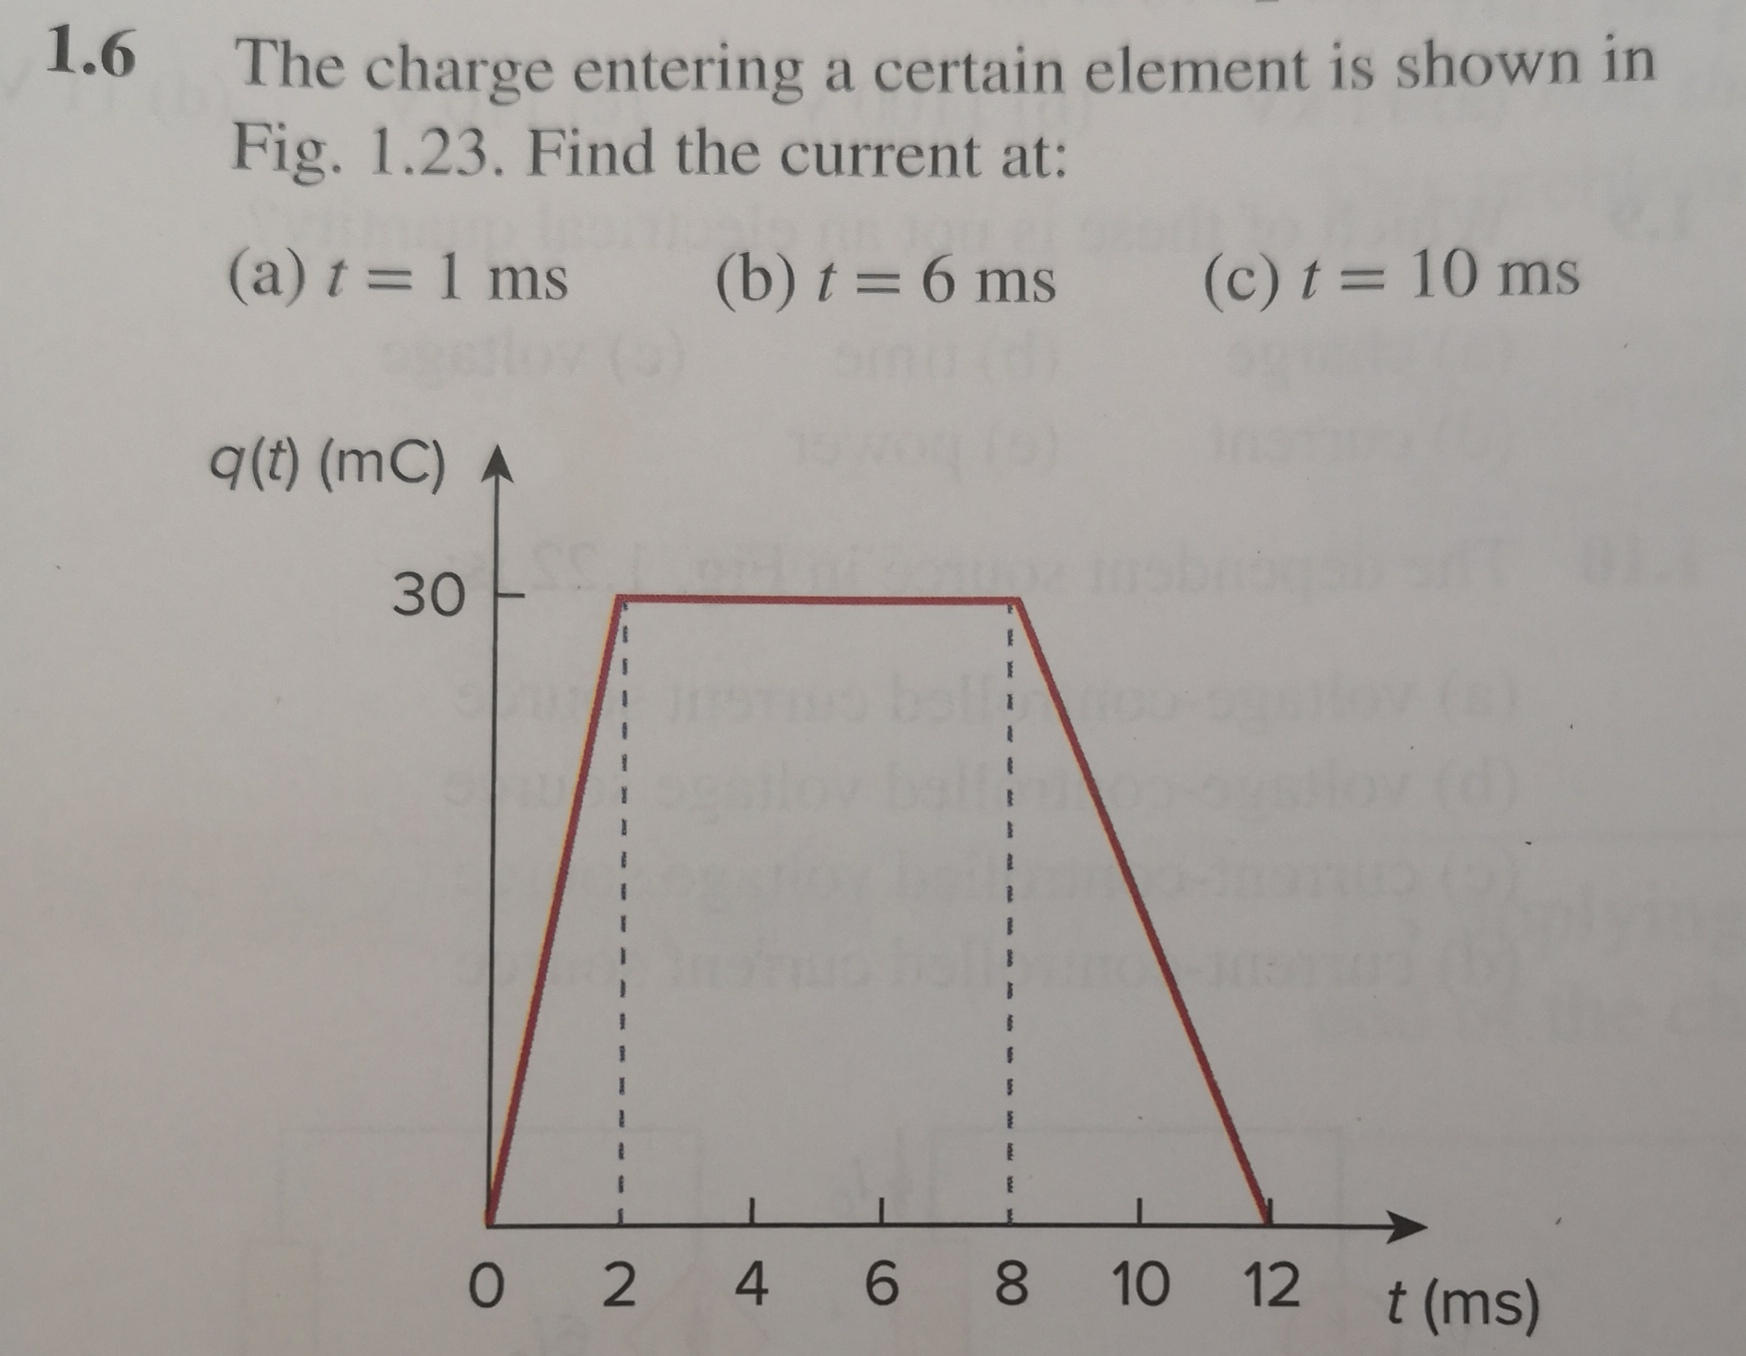 1.6 The charge entering a certain element is shown in Fig. 1.23. Find the current at: (a) t = 1 ms (b) t = 6 ms q(t) (mC) (c) t = 10 ms 30 O 2 4 6 8 10 12 t (ms)